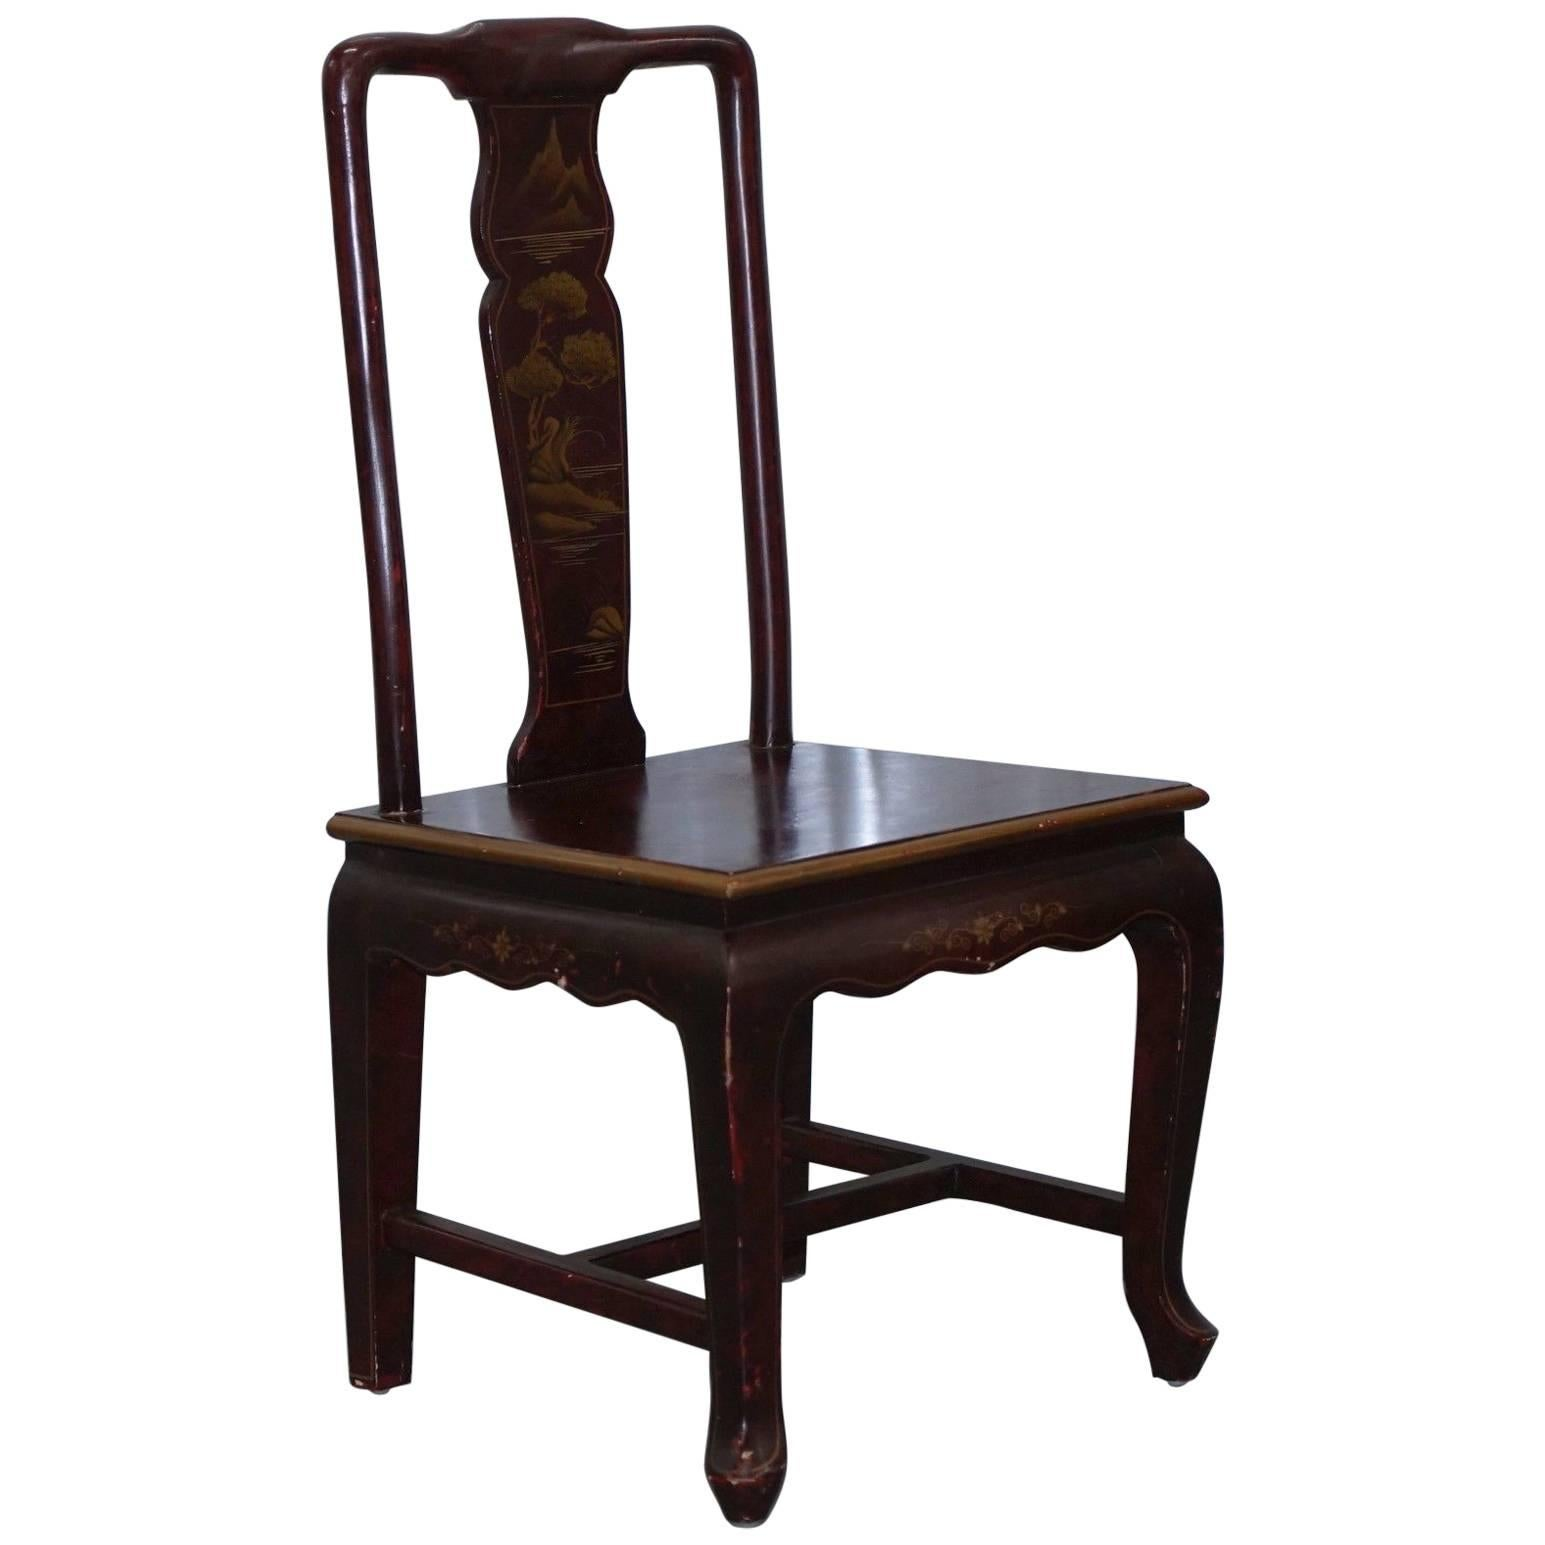 Antique Lacquered Chinese Chair of Medium Proportions Bonsai Tree Detail